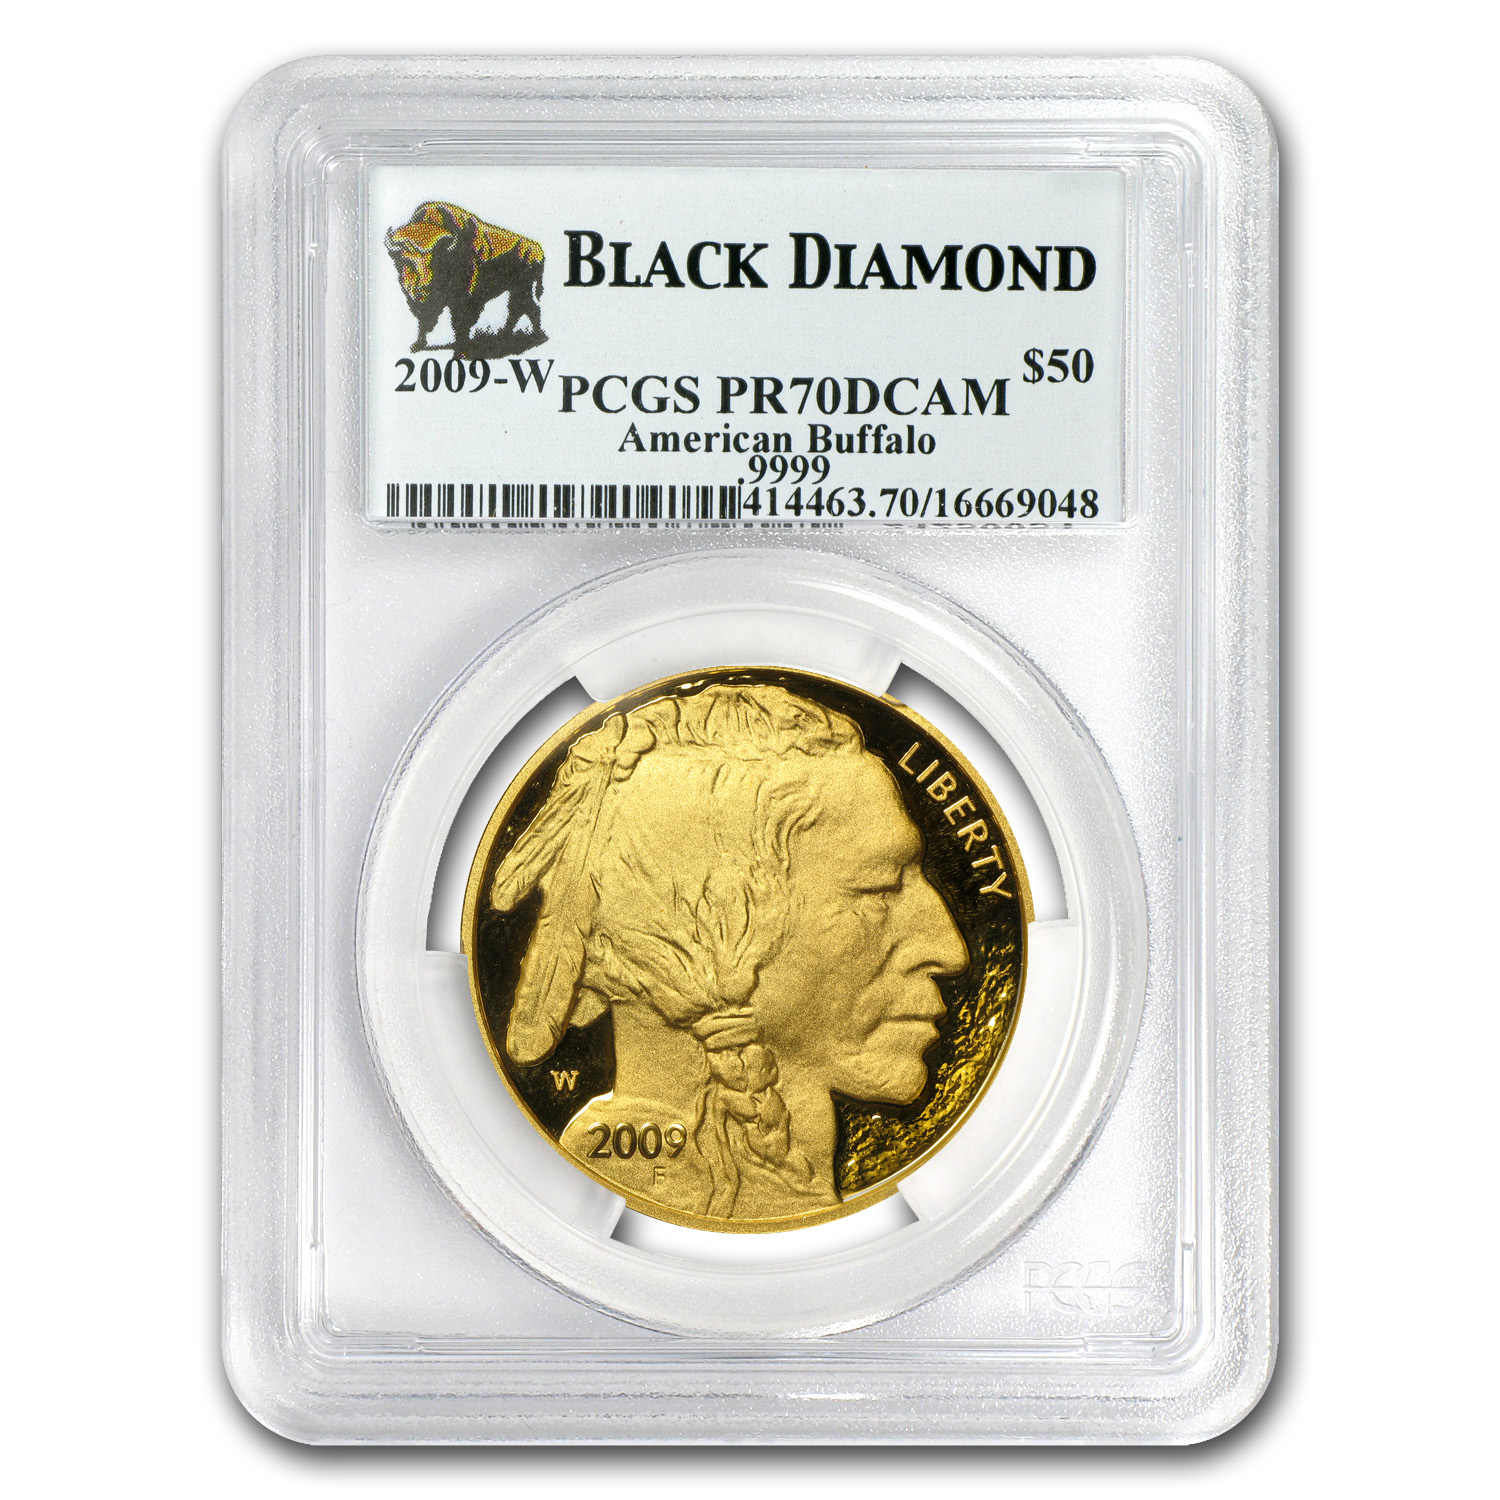 2009-W 1 oz Proof Gold Buffalo PR-70 PCGS (Black Diamond)